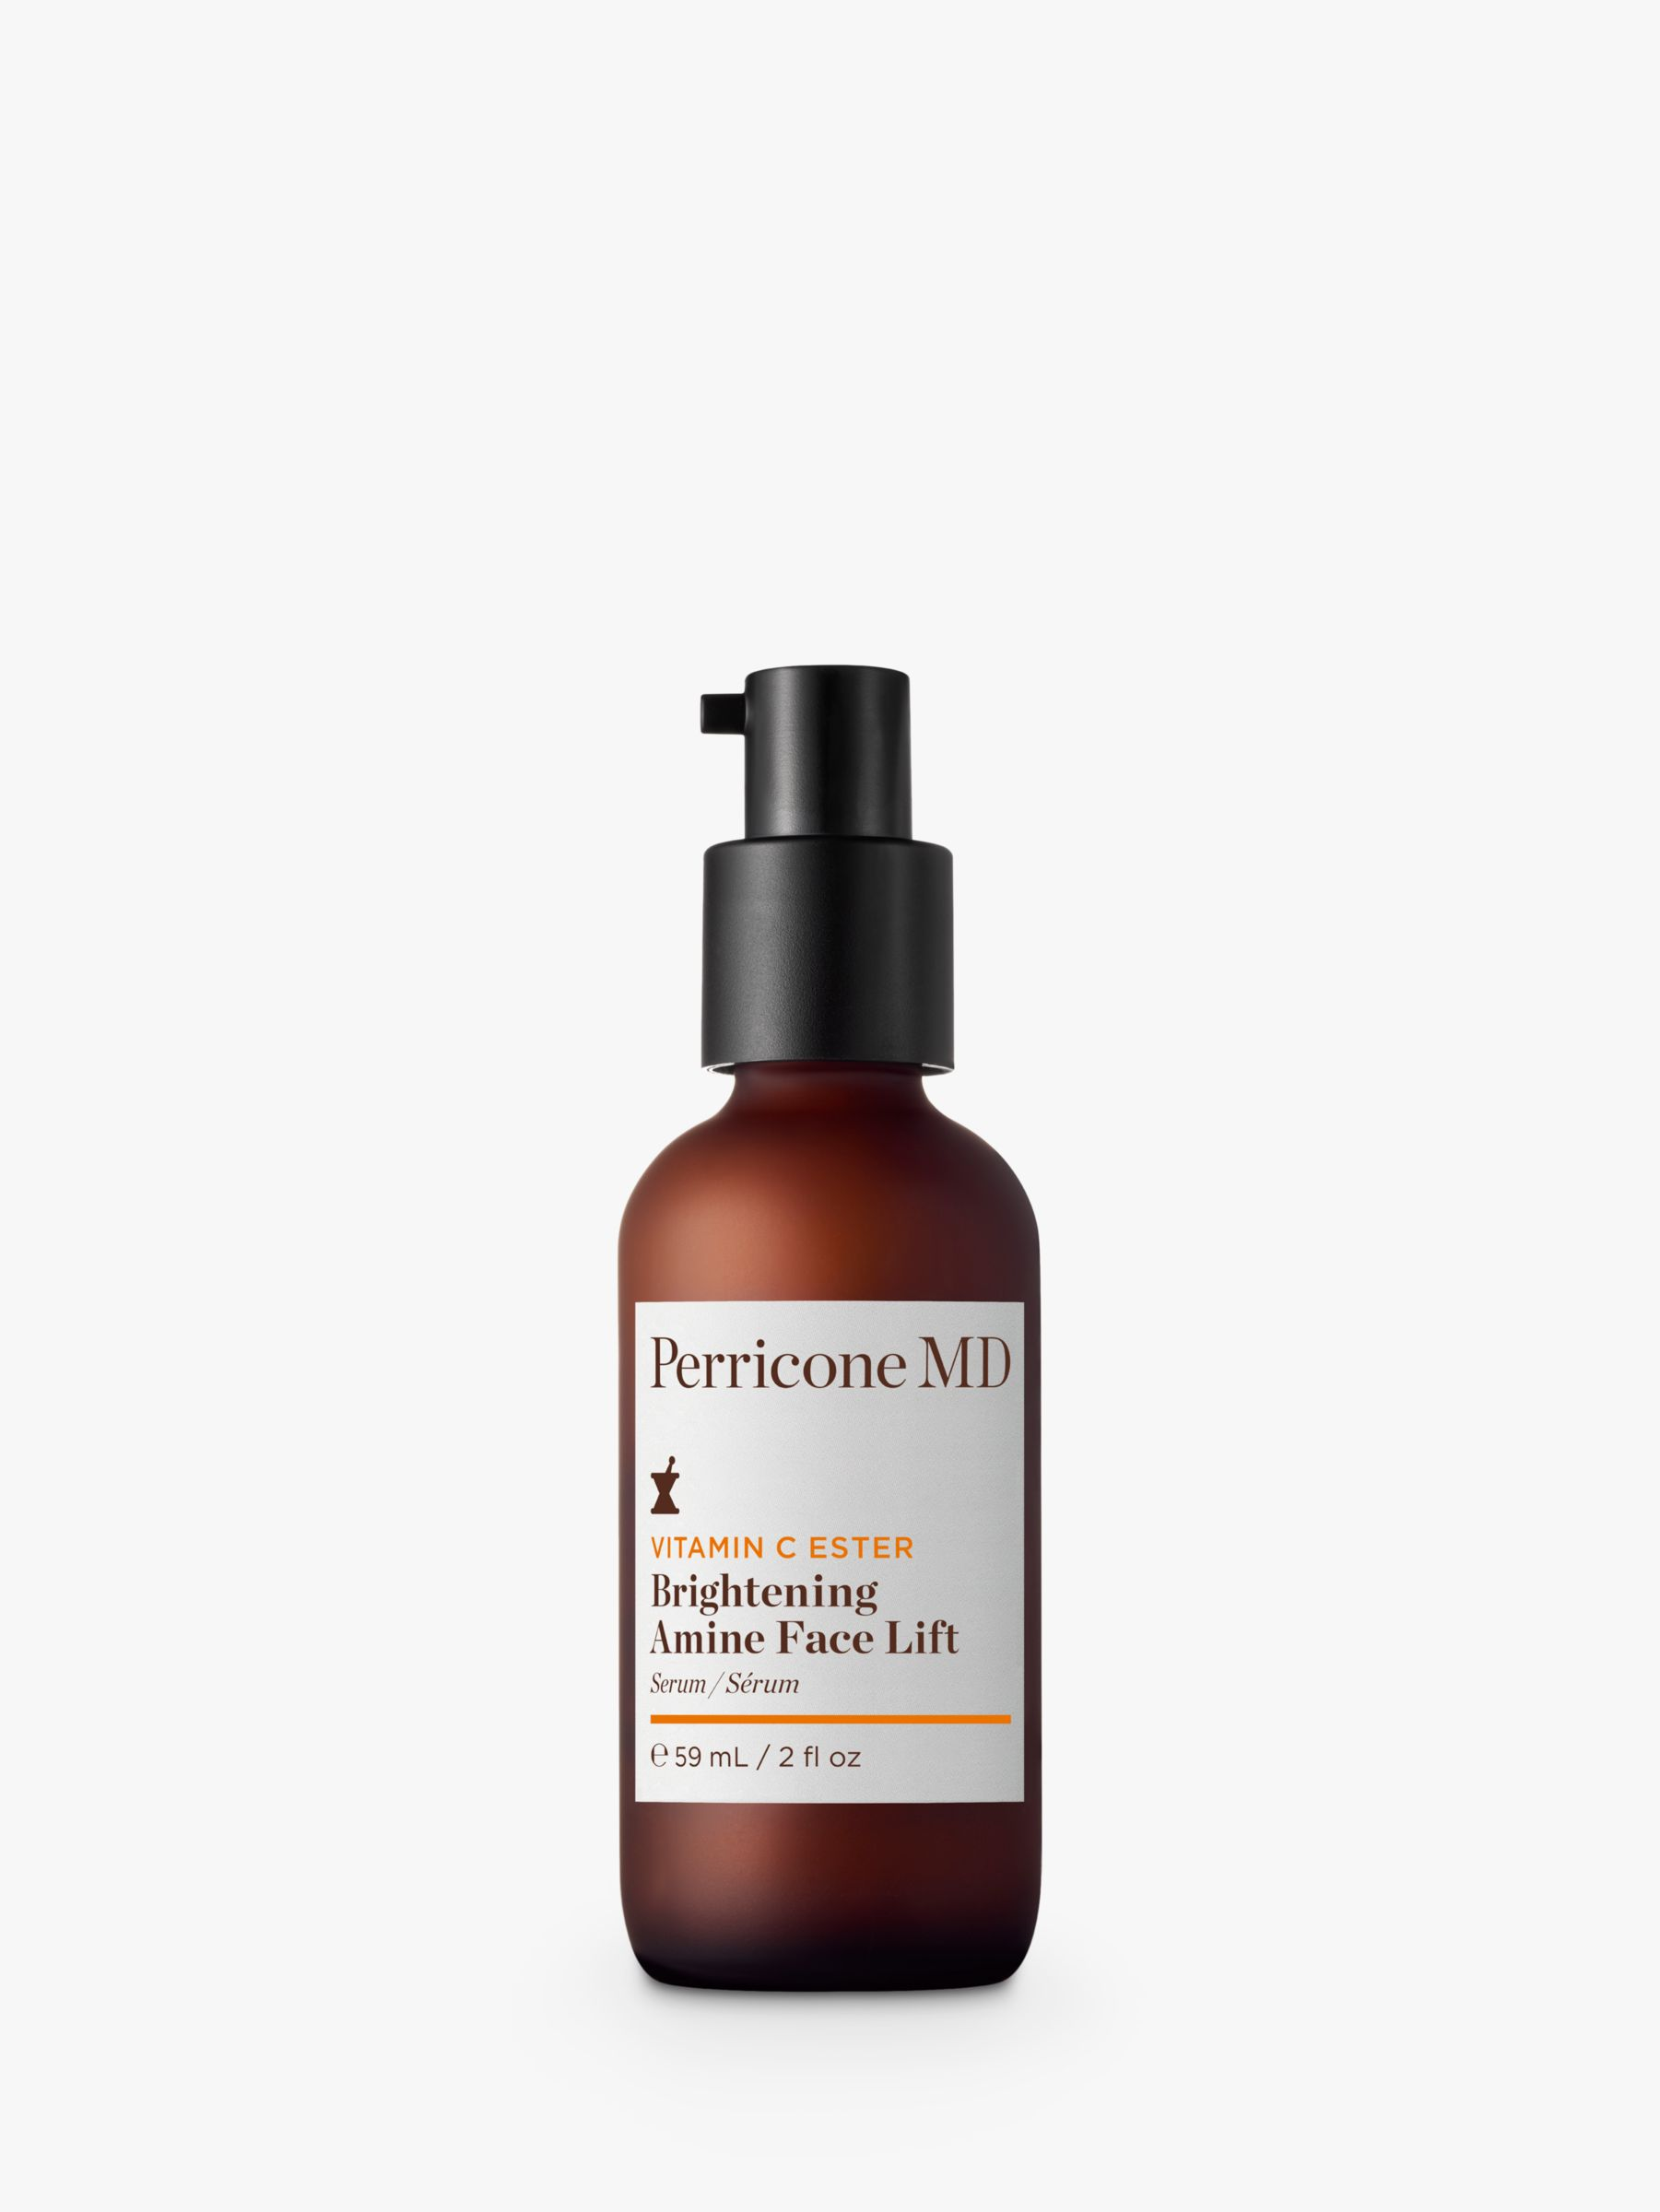 Perricone MD Perricone MD Vitamin C Ester Brightening Amine Face Lift, 59ml